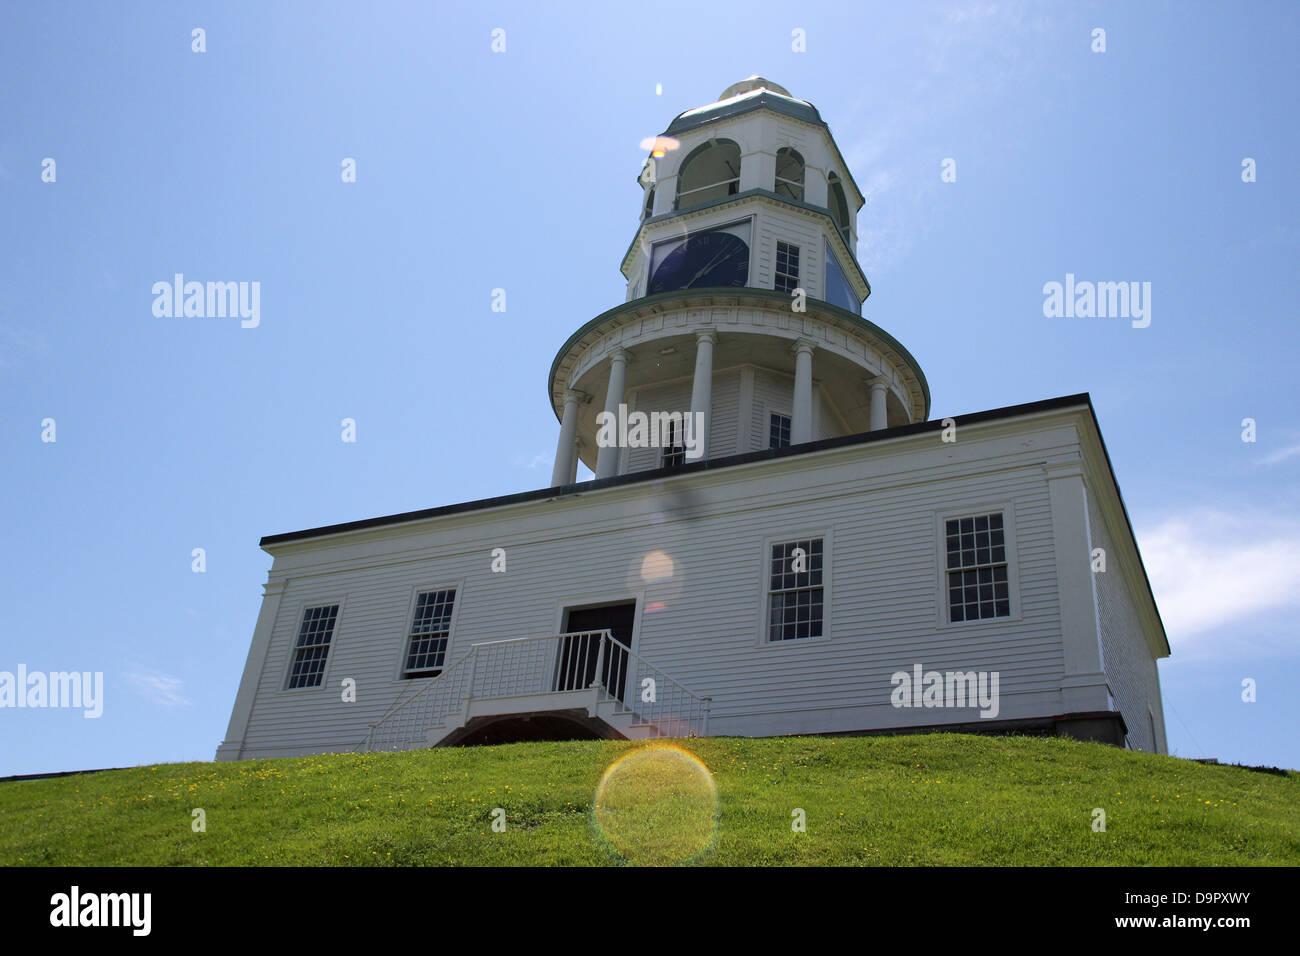 The Citadel Clock Tower is one of the most recognizable landmarks in the historic urban core of Nova Scotia - Stock Image